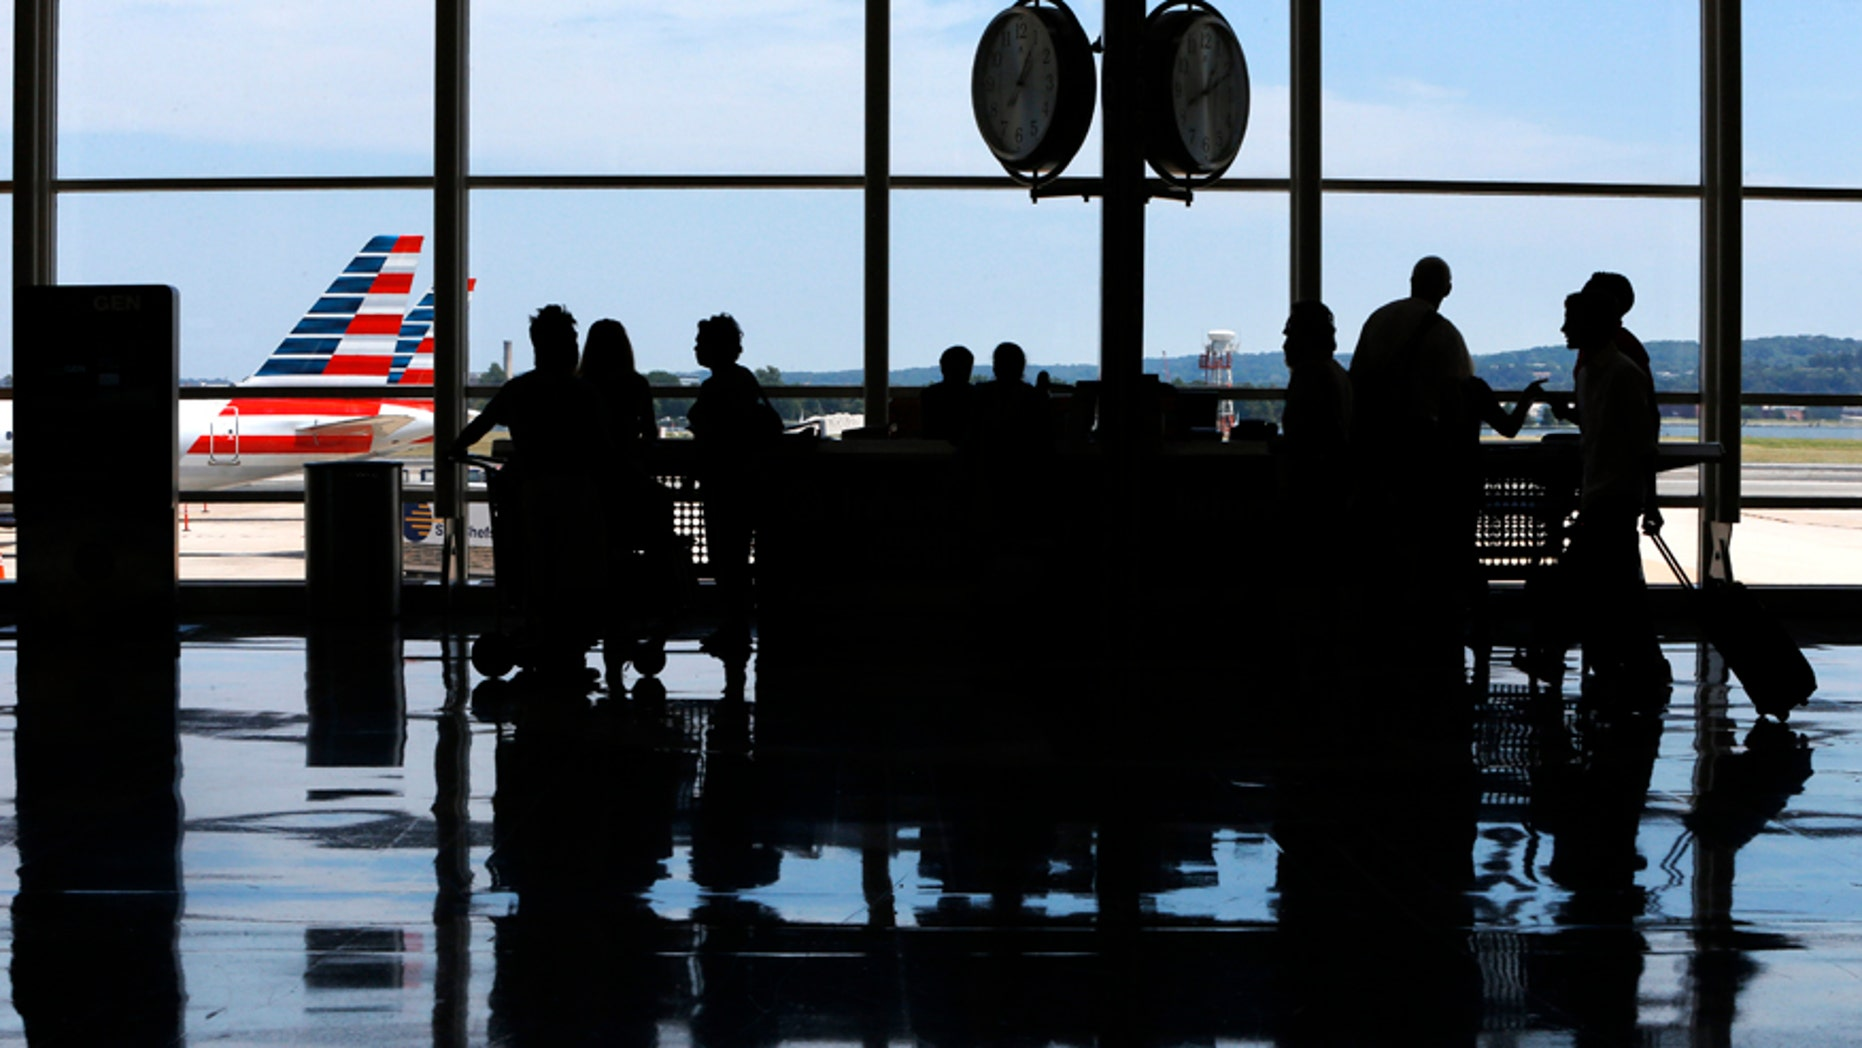 People ask questions at an information kiosk at Washington's Reagan National Airport after technical issues at a Federal Aviation Administration caused delays and cancellations on Saturday, Aug. 15, 2015.